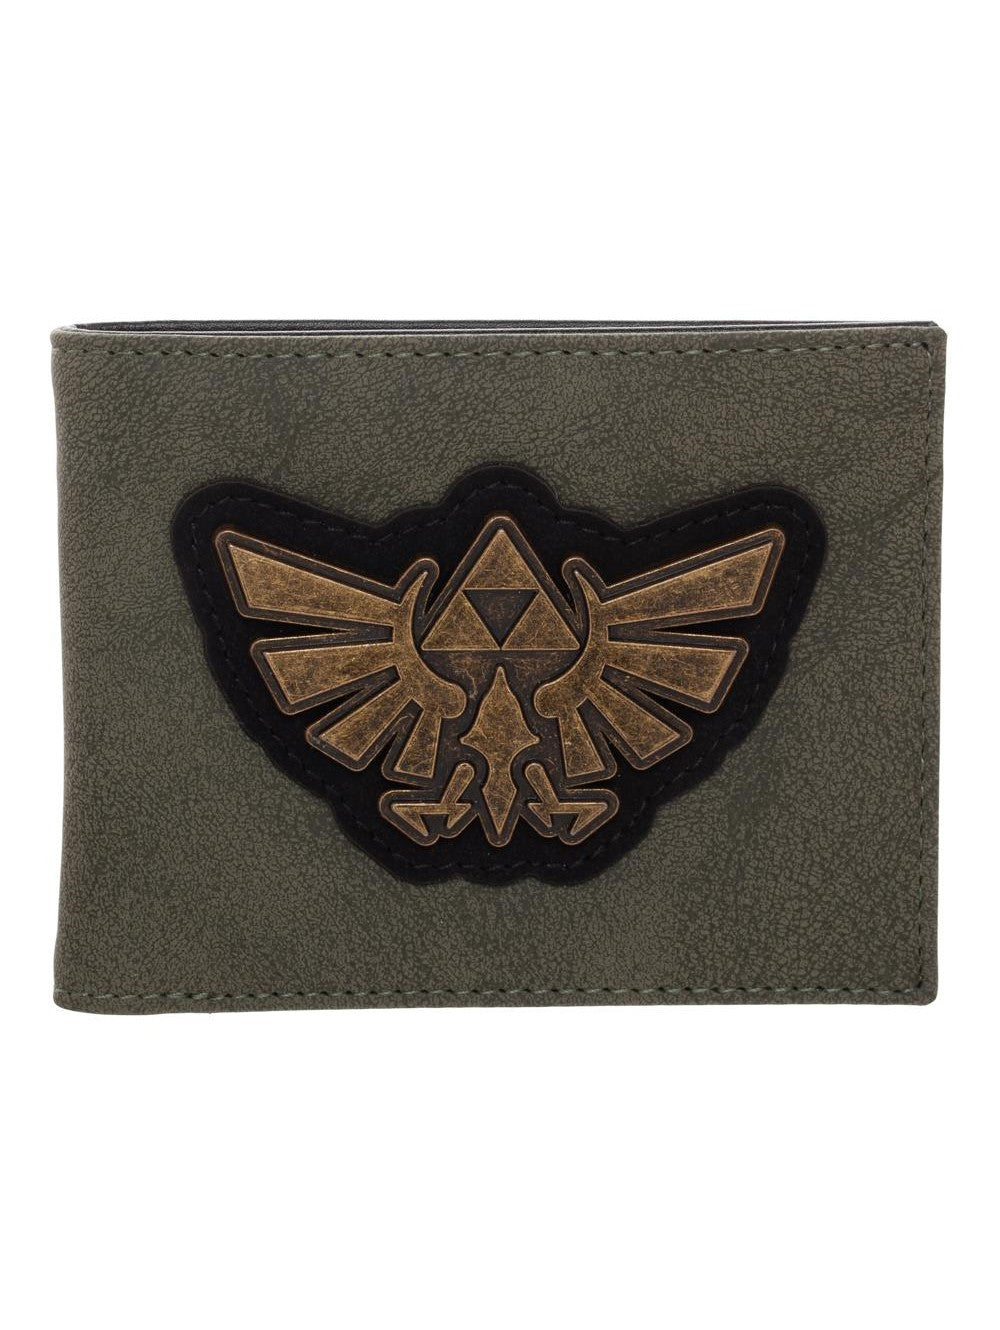 Nintendo - Zelda  Hyrule Crest Distressed Bifold With Metal Badge Wallet